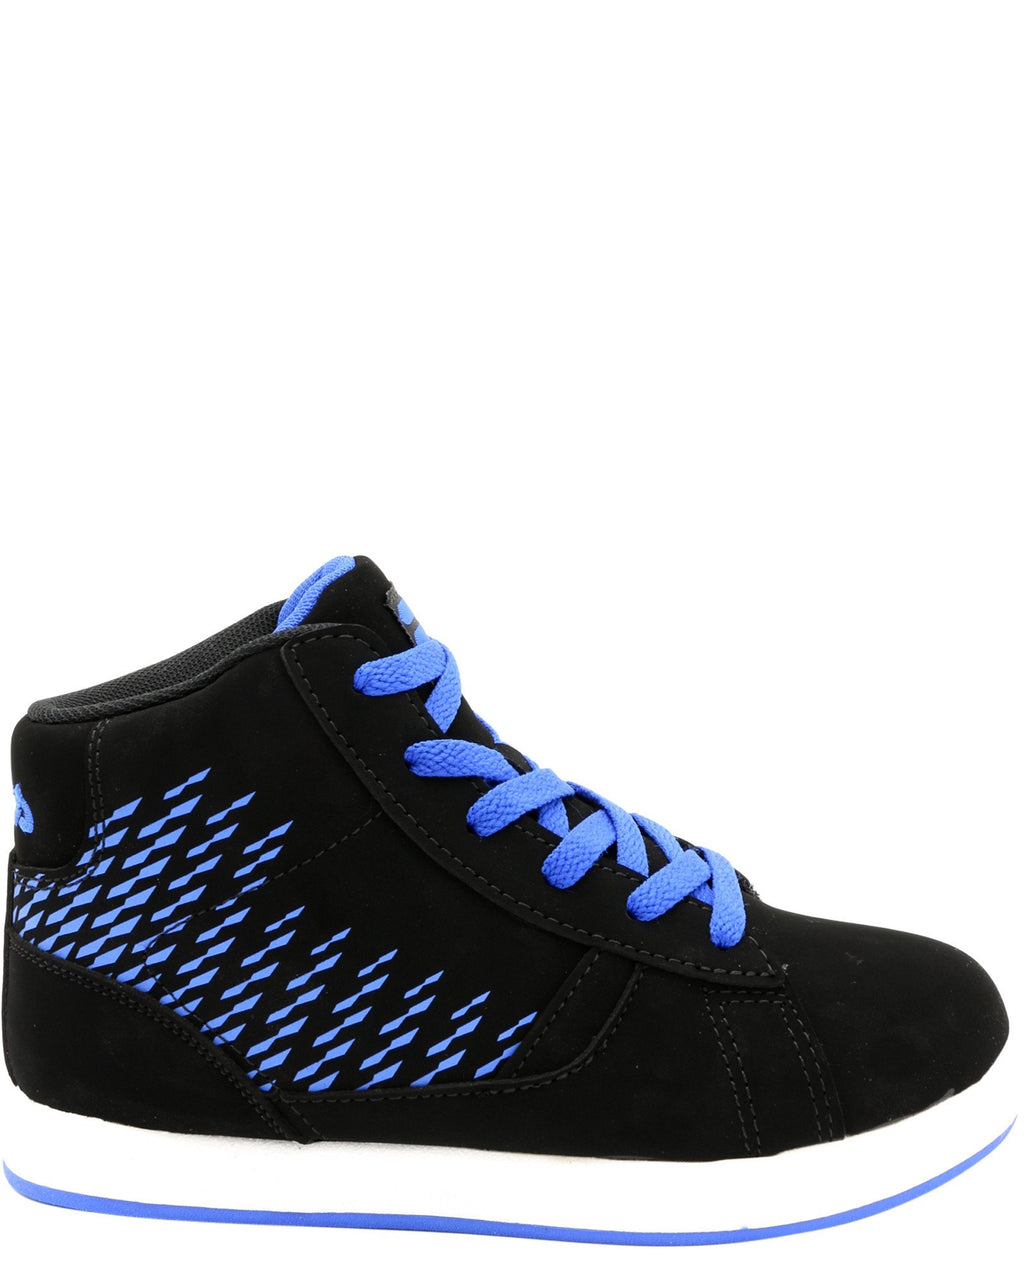 Boy's Dyano 2 Mid Sneakers (Grade School)